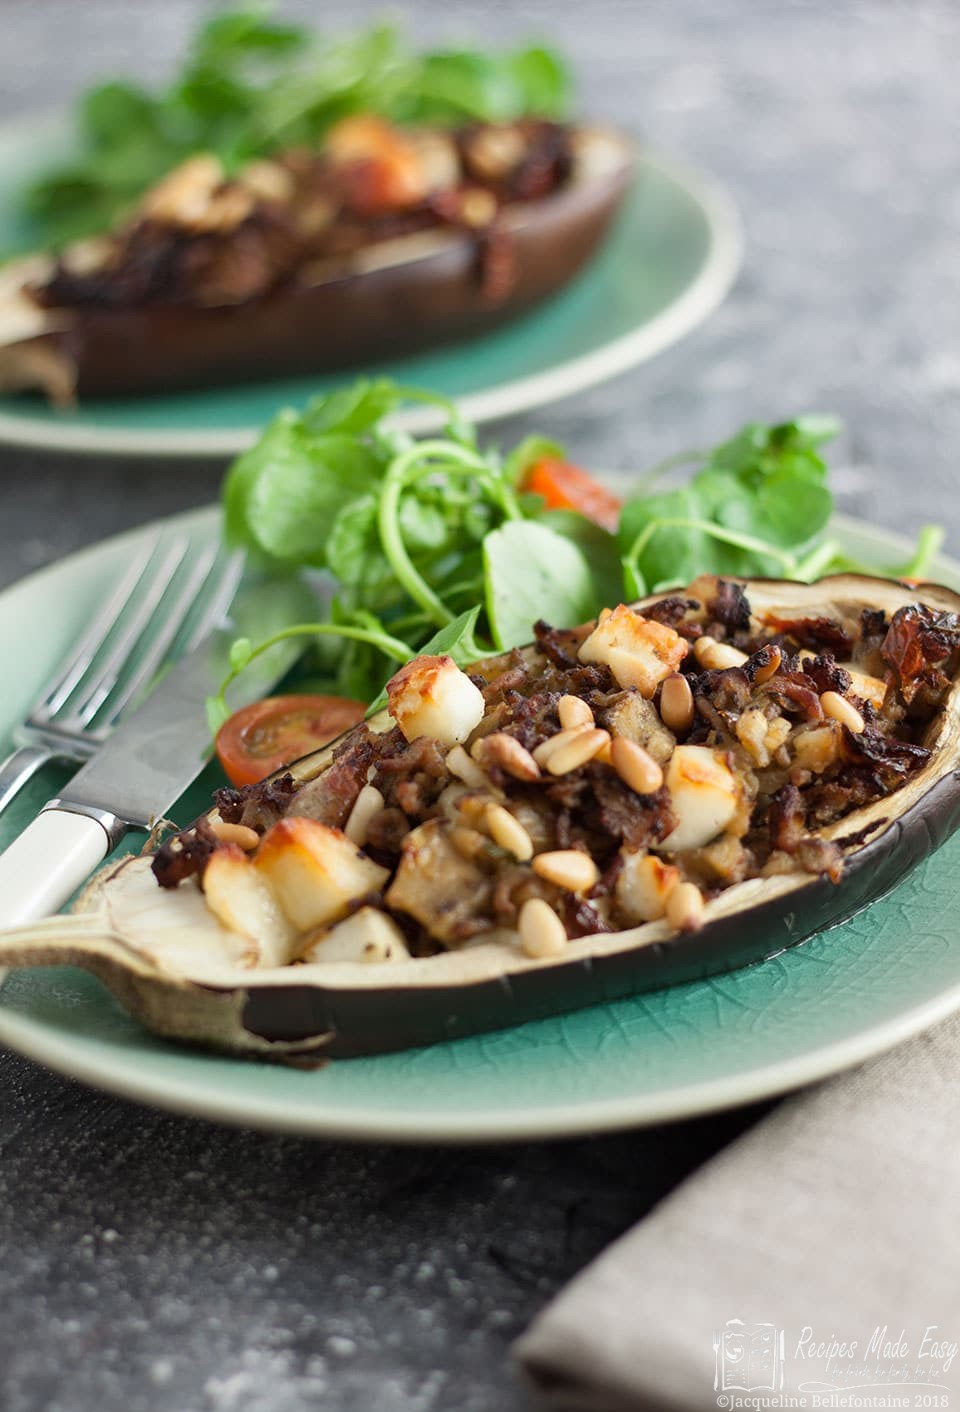 stuffed aubergine with lamb and haloumi a simple and quick to prepare dish.